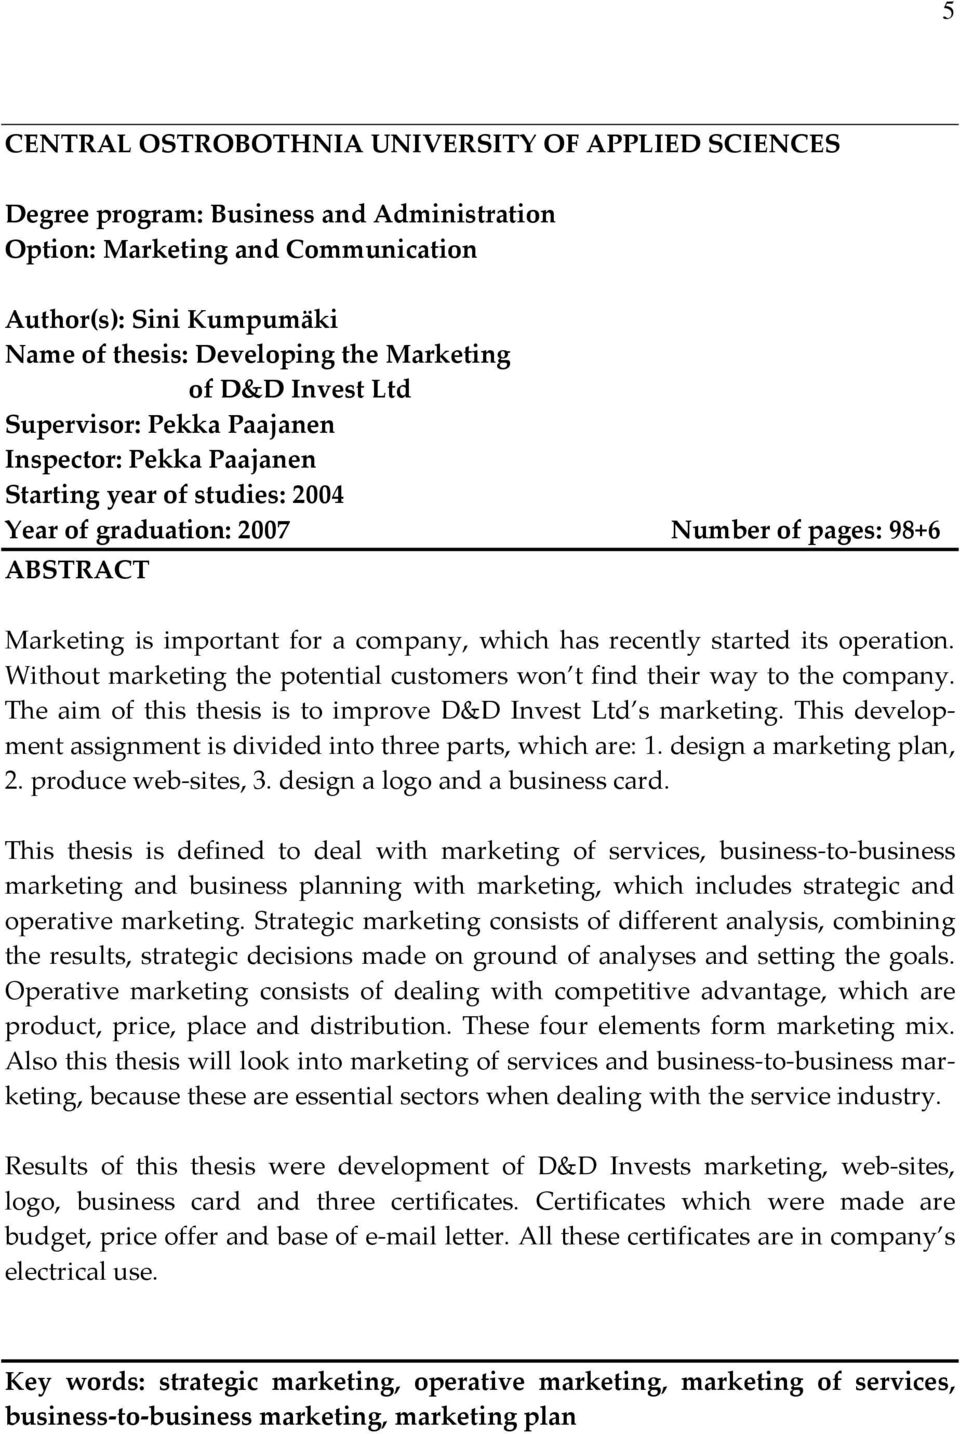 company, which has recently started its operation. Without marketing the potential customers won t find their way to the company. The aim of this thesis is to improve D&D Invest Ltd s marketing.